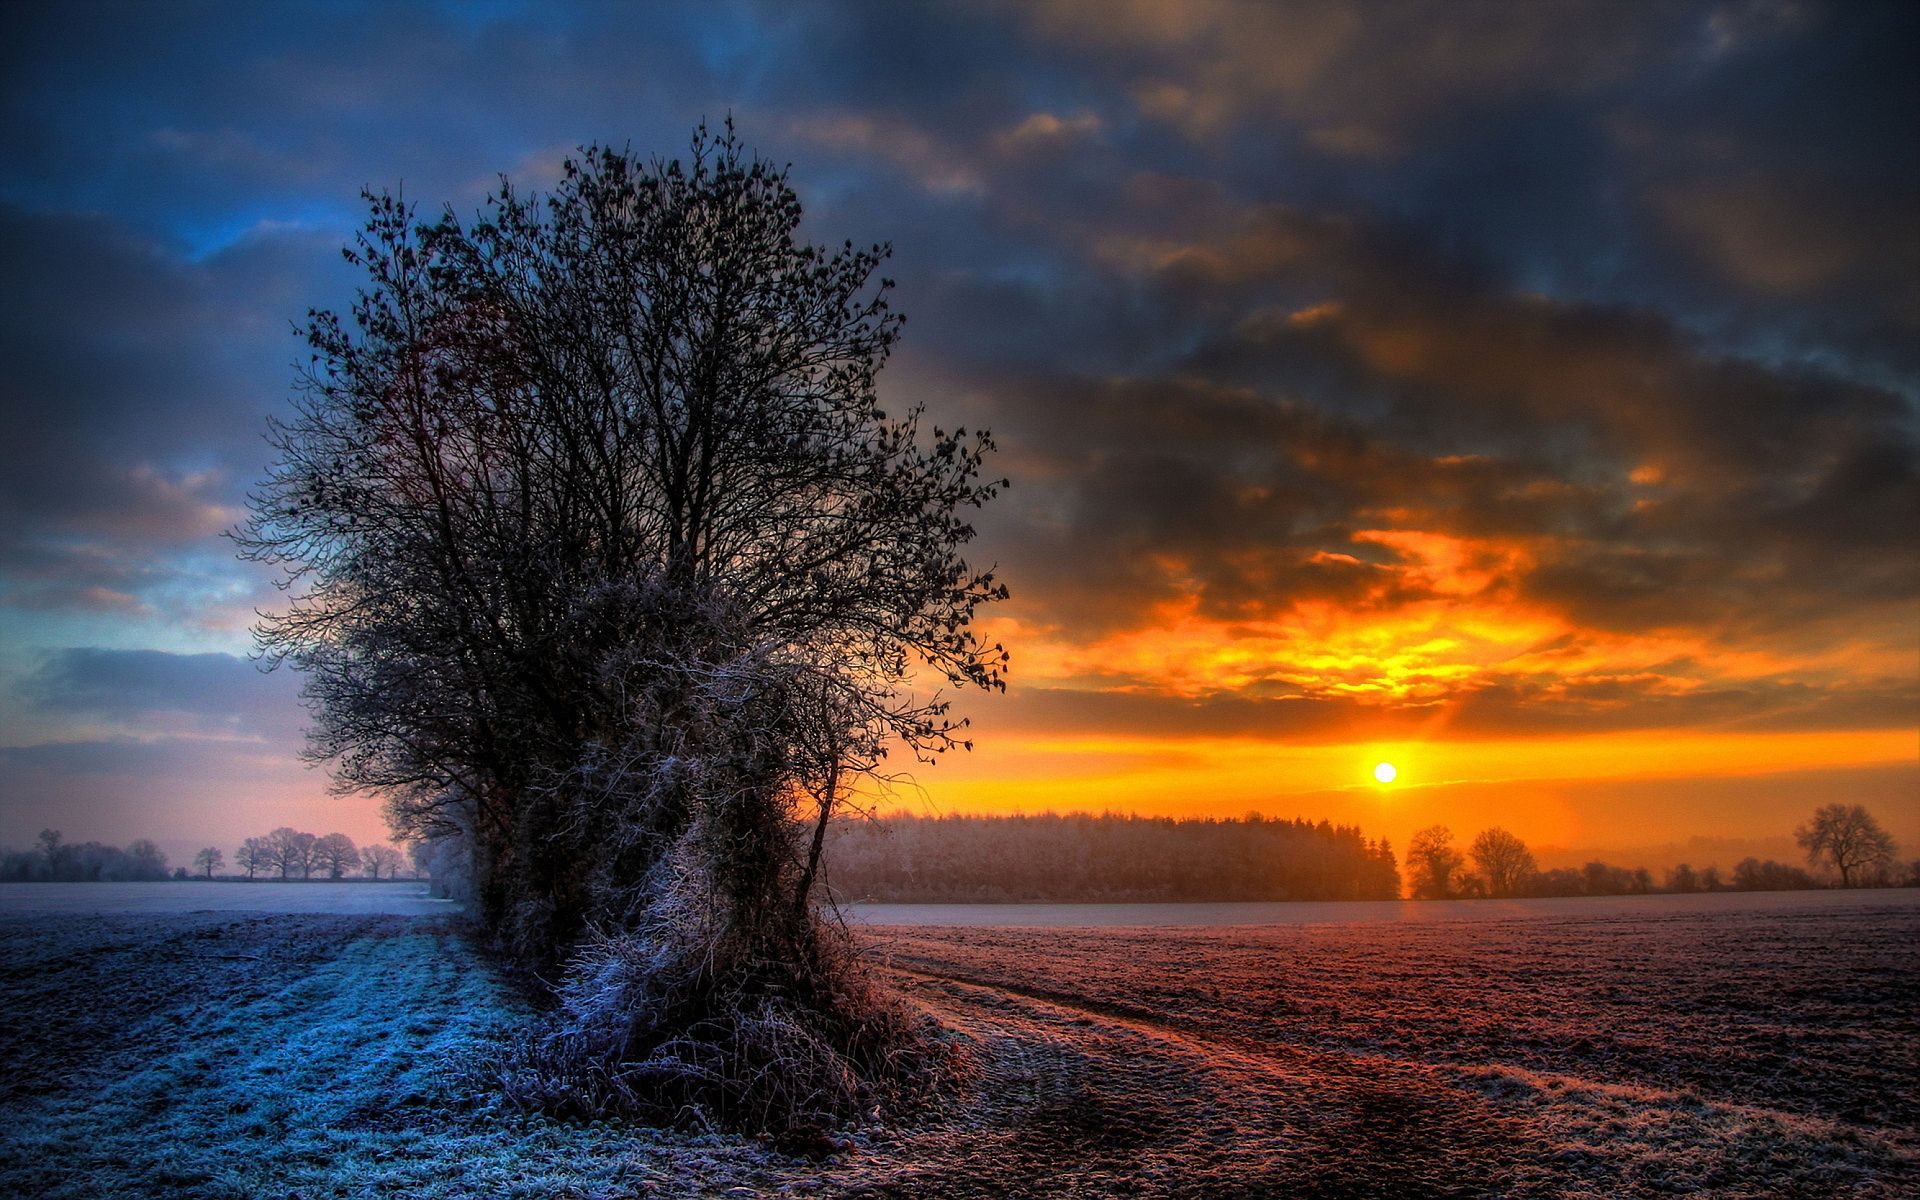 Winter Sunset Wallpapers Picture For Free Wallpaper Swoop Winter